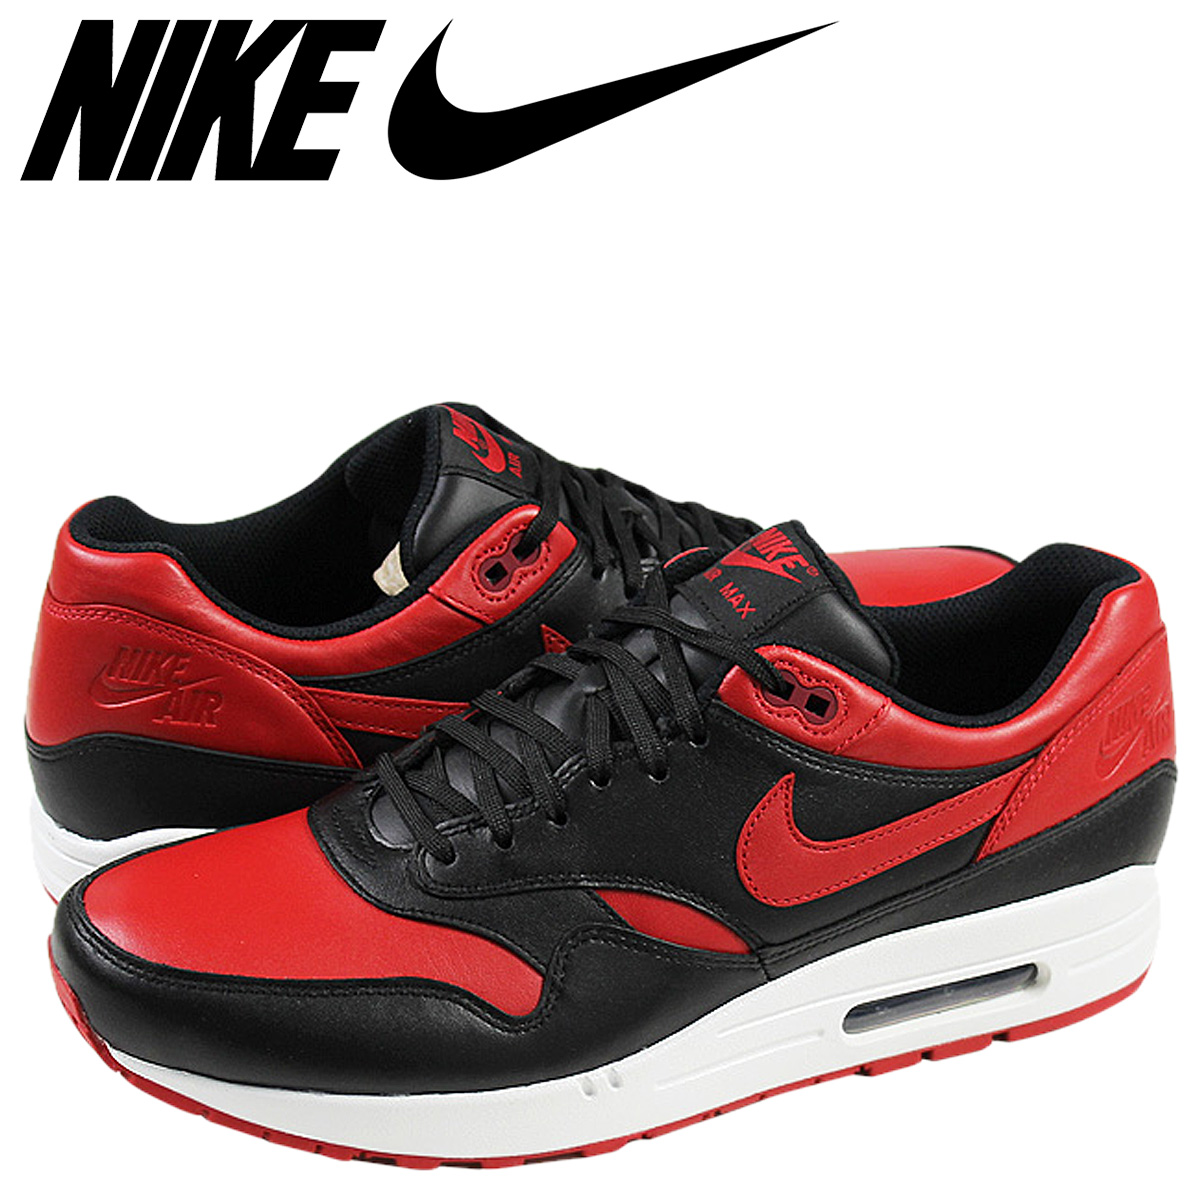 Nike NIKE Air Max sneakers MITA SNEAKERS AIR MAX 1 PREMIUM QS Air Max 1  Premium QS 665873-061 black red mens